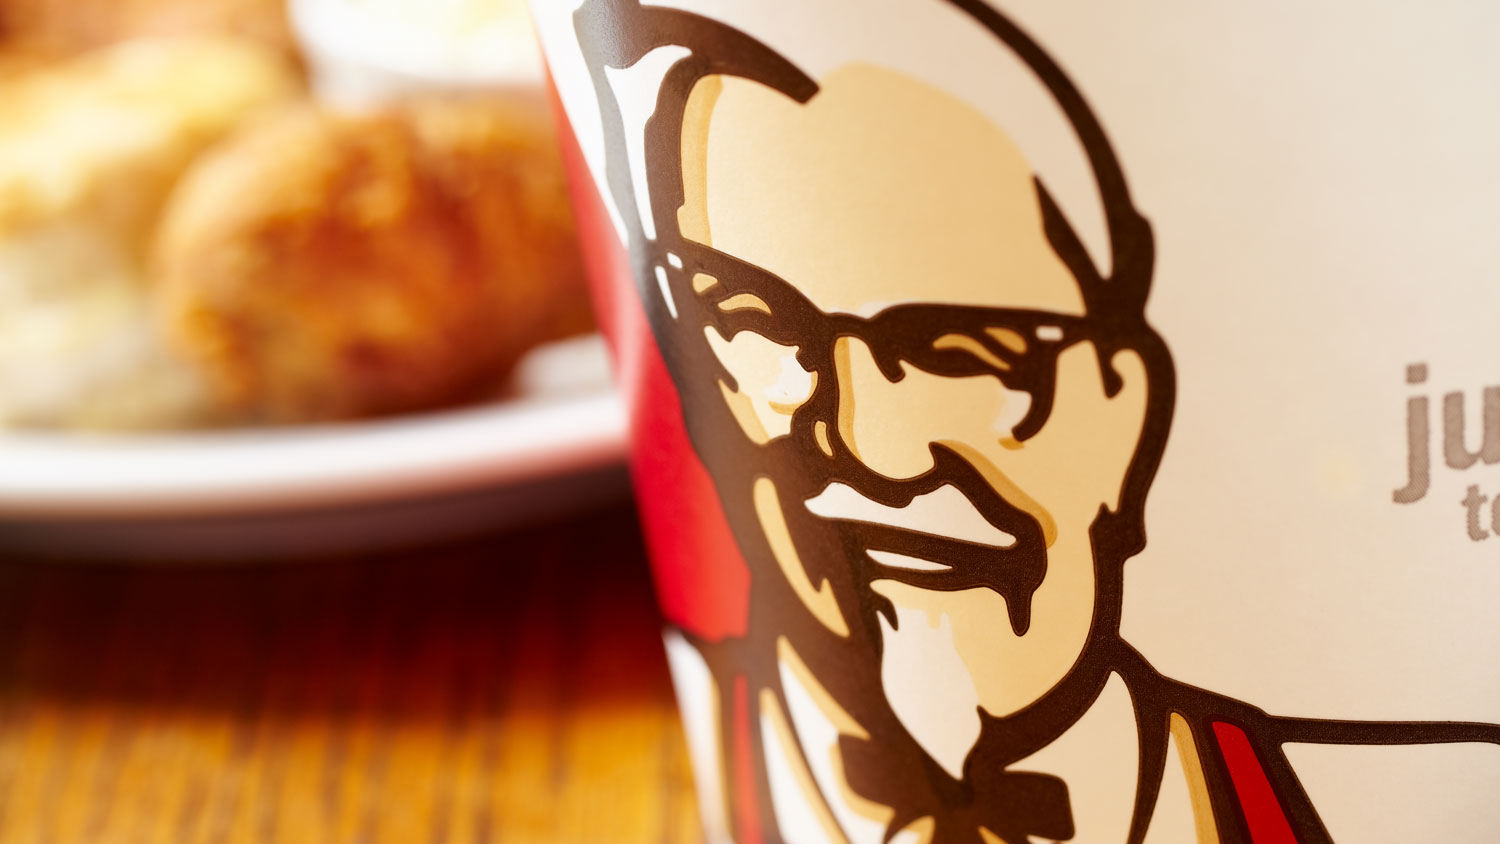 KFC Has a Reality Show in South Africa